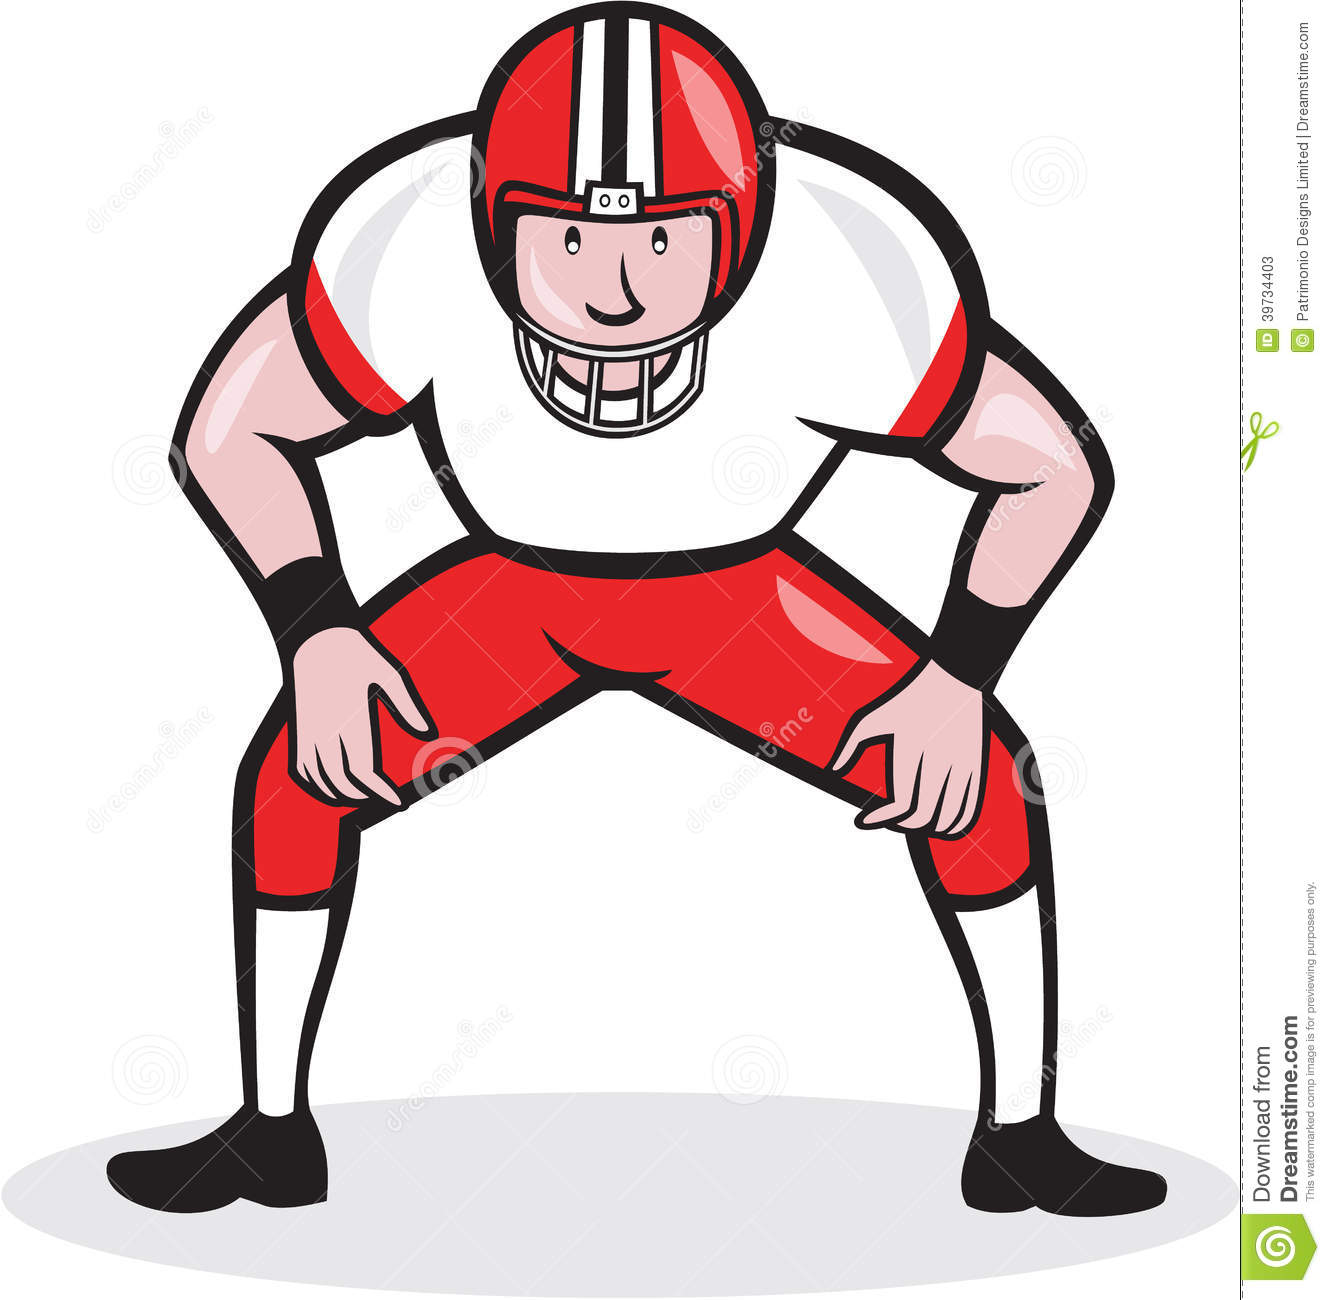 1330x1300 Cartoon Football Player Clipart Many Interesting Cliparts